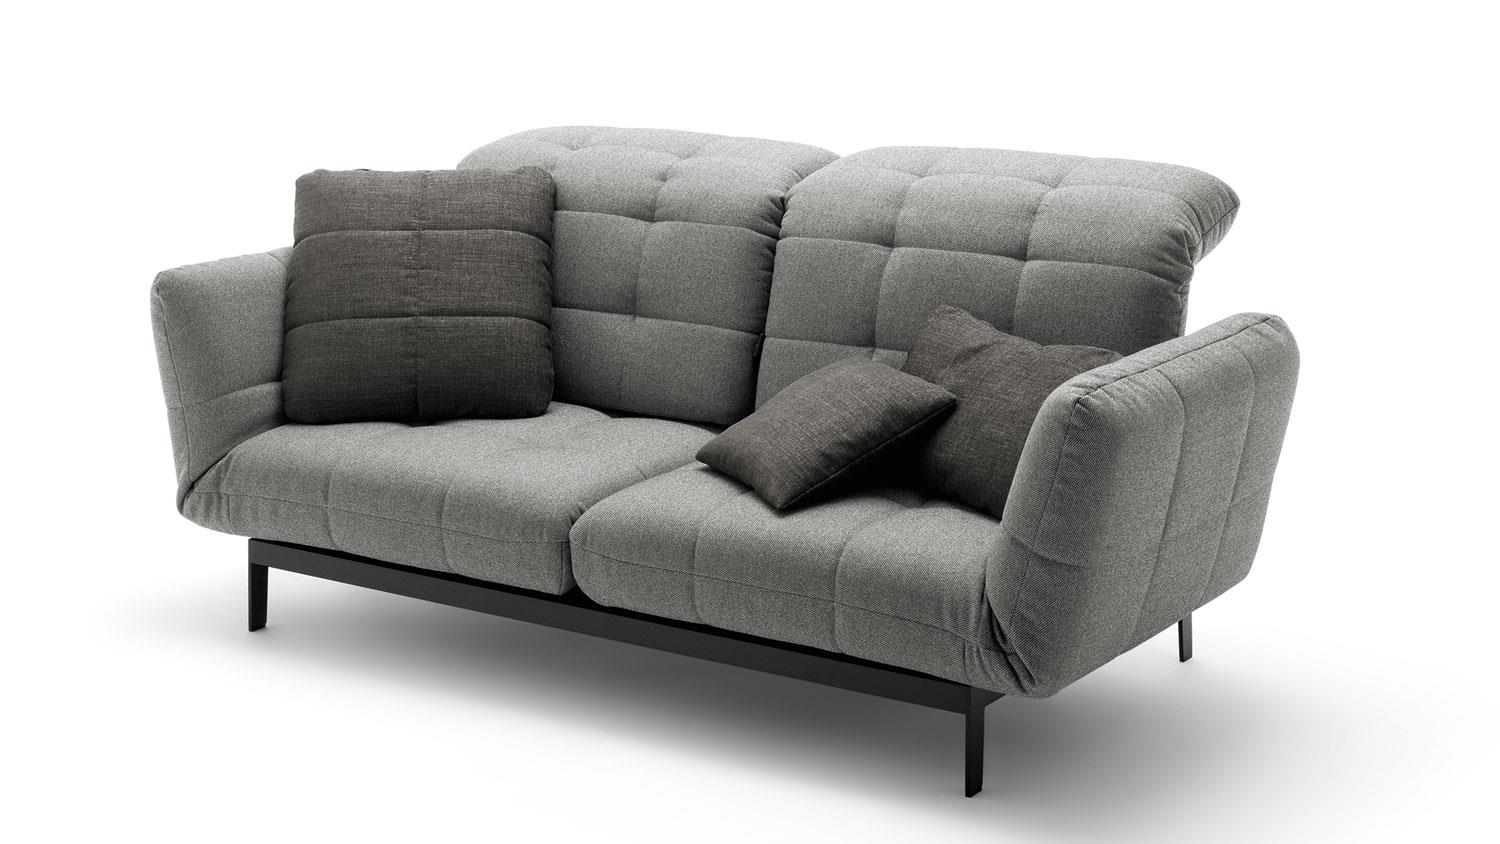 Ledercouch Mit Relaxfunktion Rolf Benz Sofa Agio 342 Komfort Relaxfunktion Stoff Silbergrau